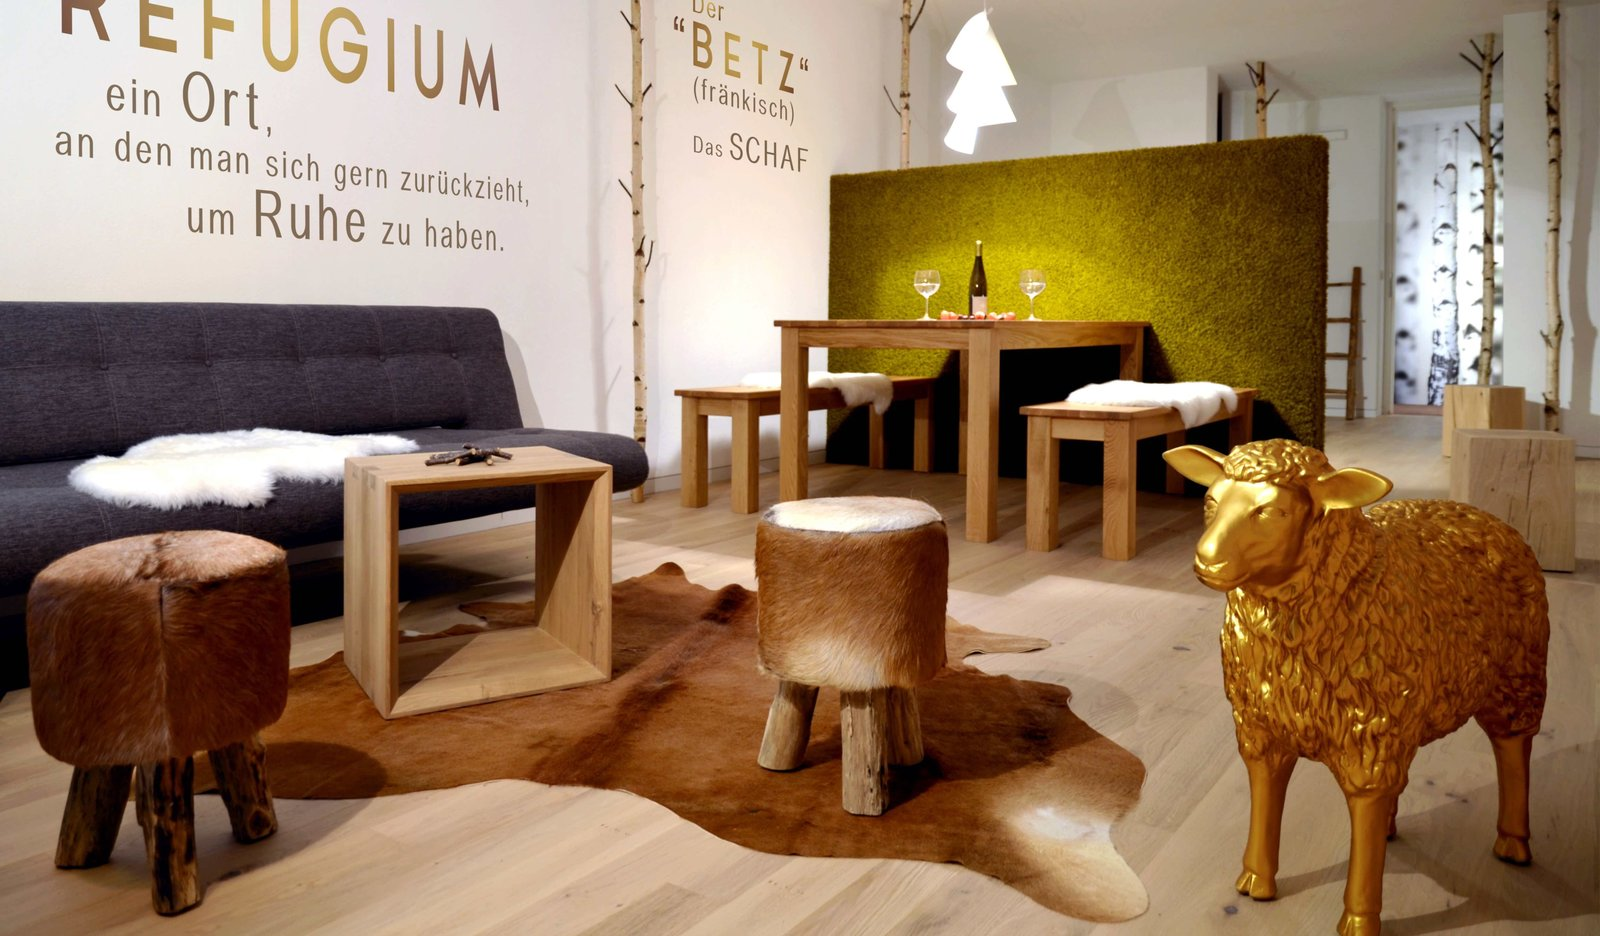 Living Room, Stools, Sofa, Bench, Table, Pendant Lighting, and Light Hardwood Floor  Refugium Betzenstein from Escape to a Bio-Passive Vacation Refuge in a Bavarian Nature Park